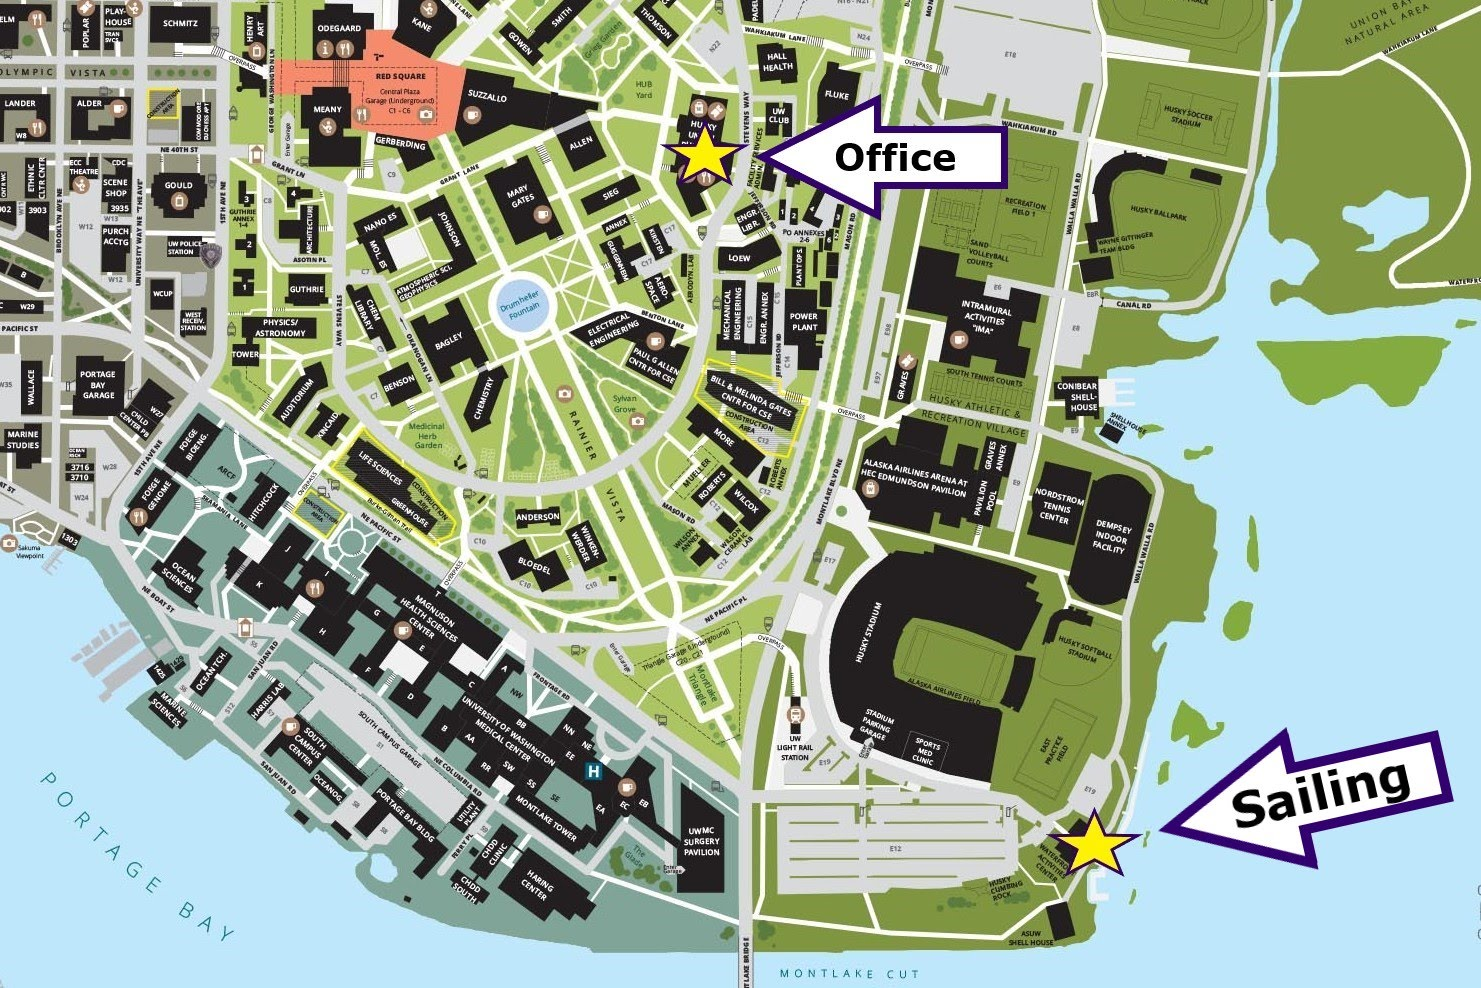 Location of WYC Office and the Port the WYC uses